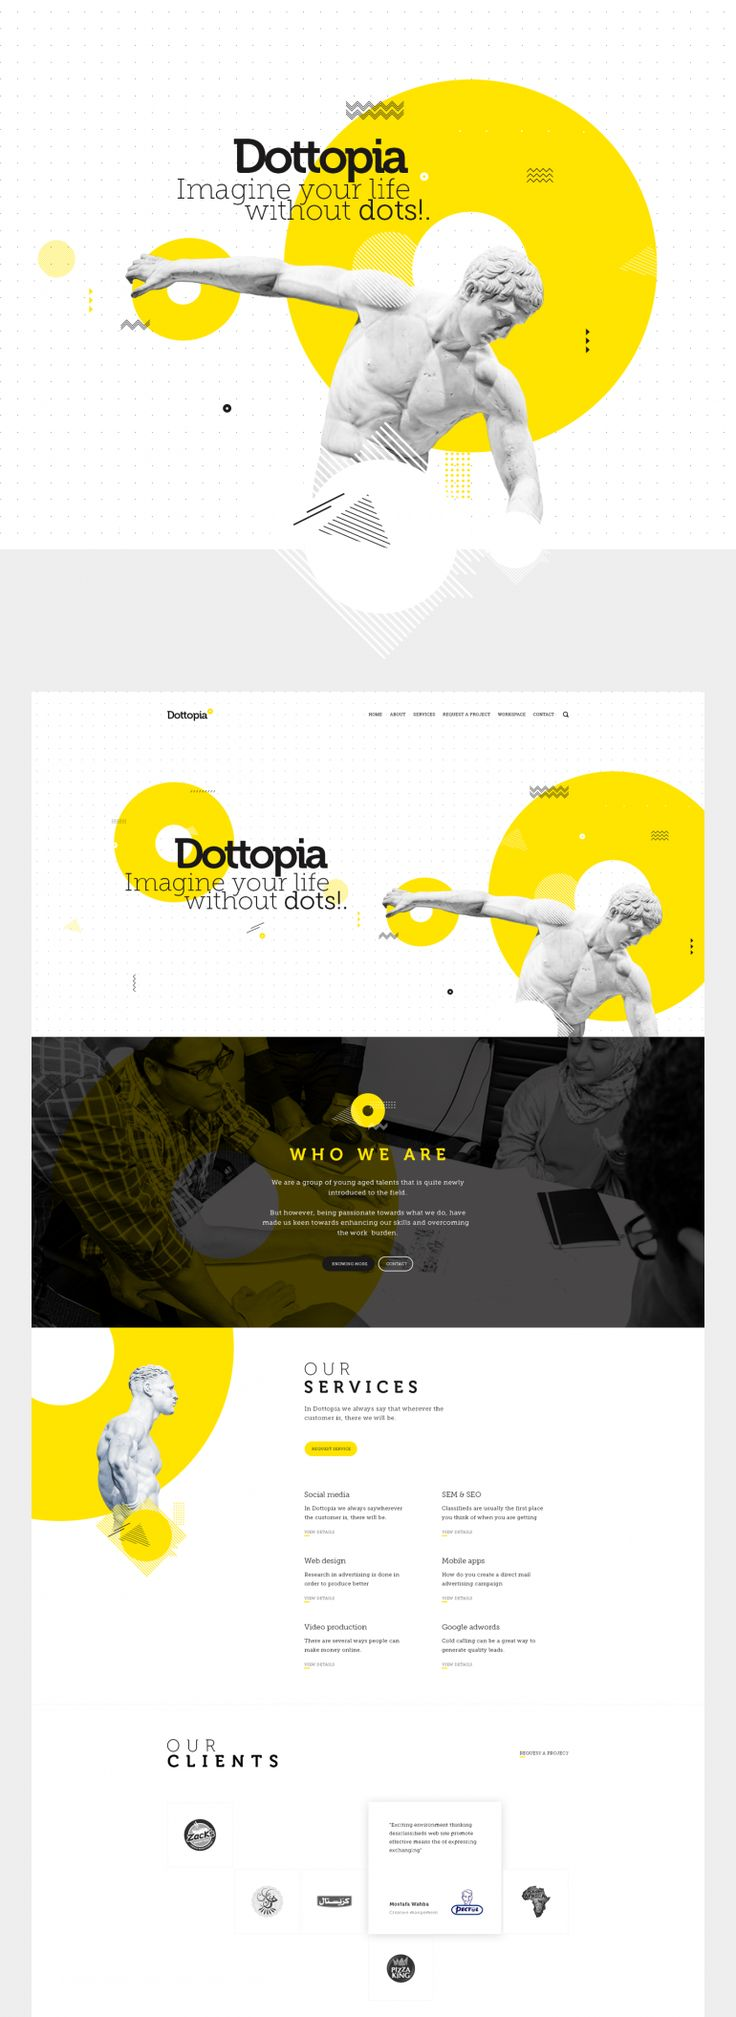 Dottopia web design UX/UI on